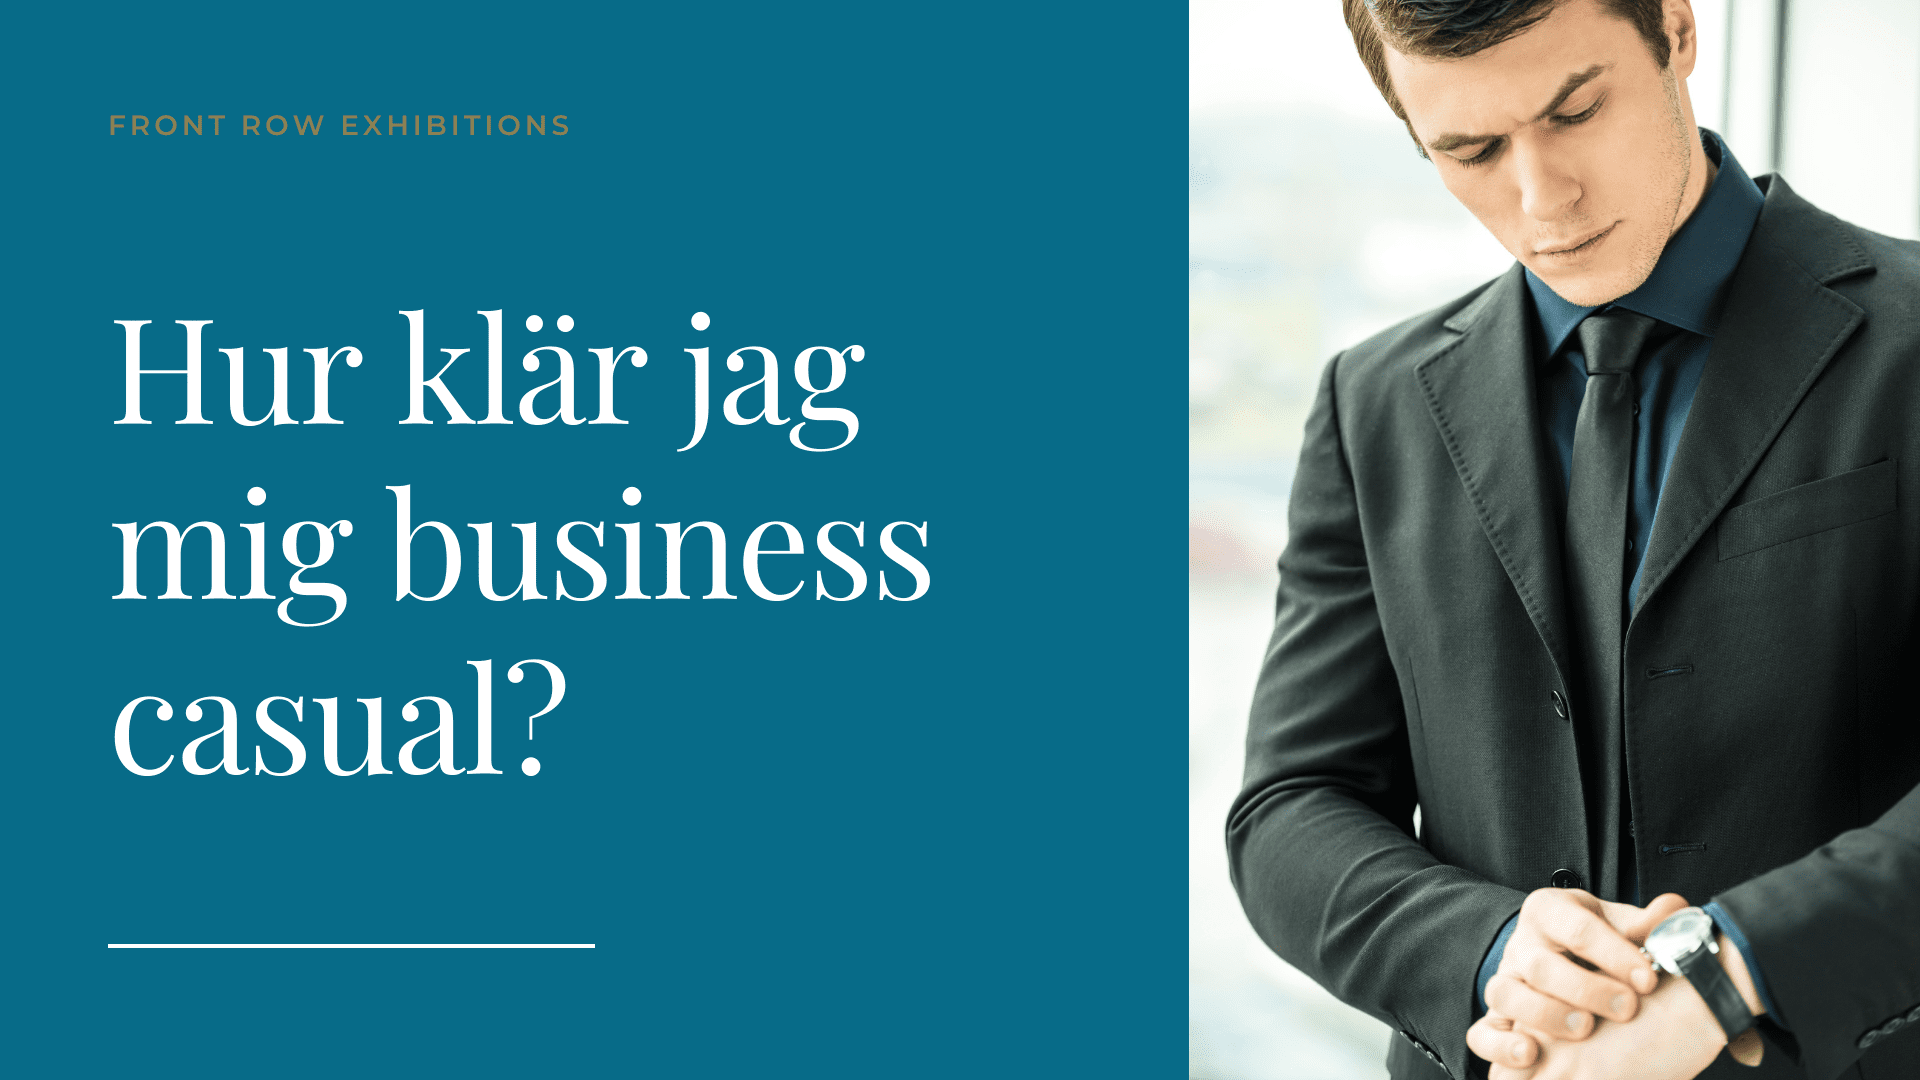 Hur du klär dig business casual framgångstips från Front Row Exhibitions